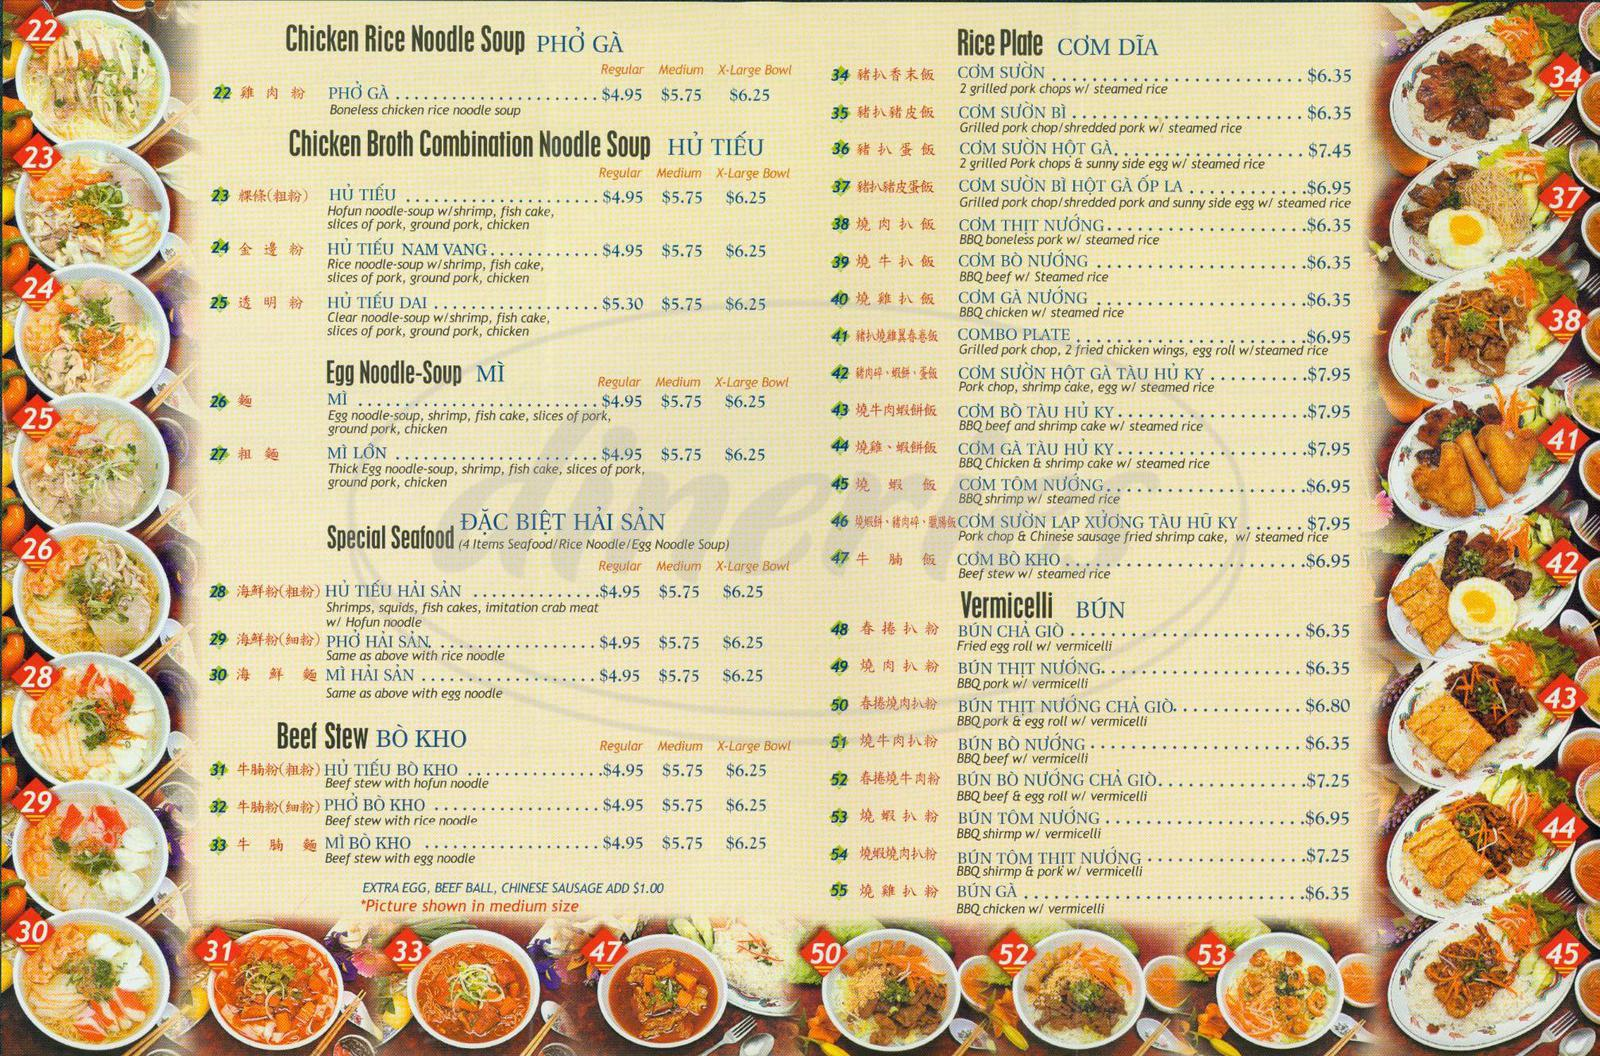 menu for Pho Hoa Hiep